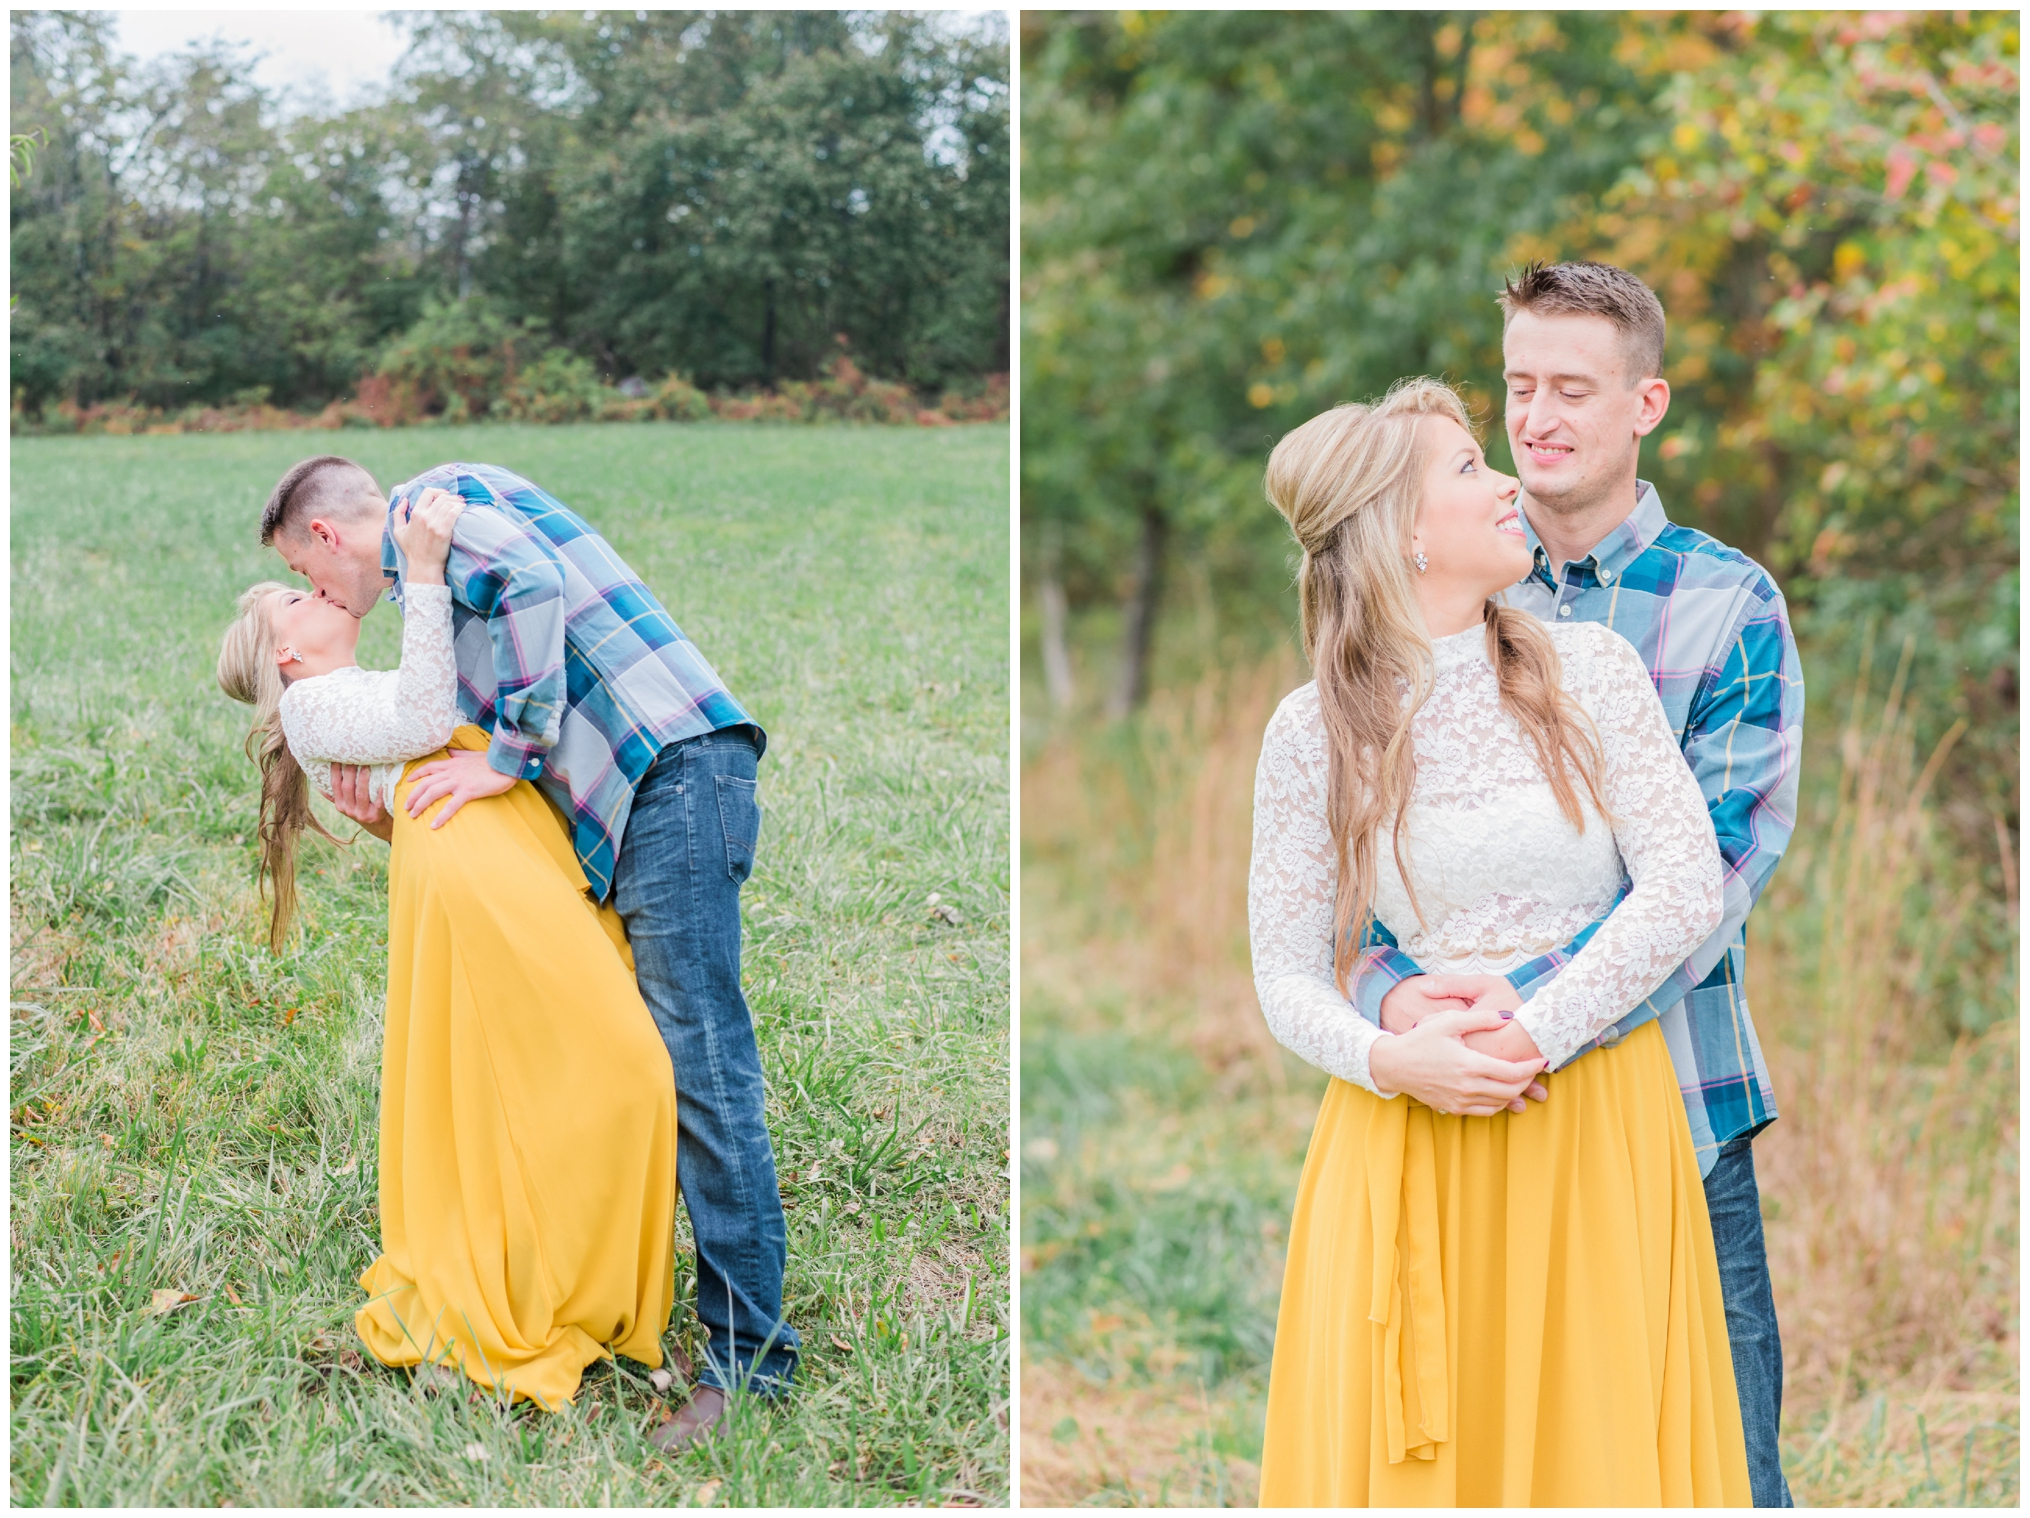 Fall Engagement Session Collegeville, PA - Krista Brackin Photography_0013.jpg